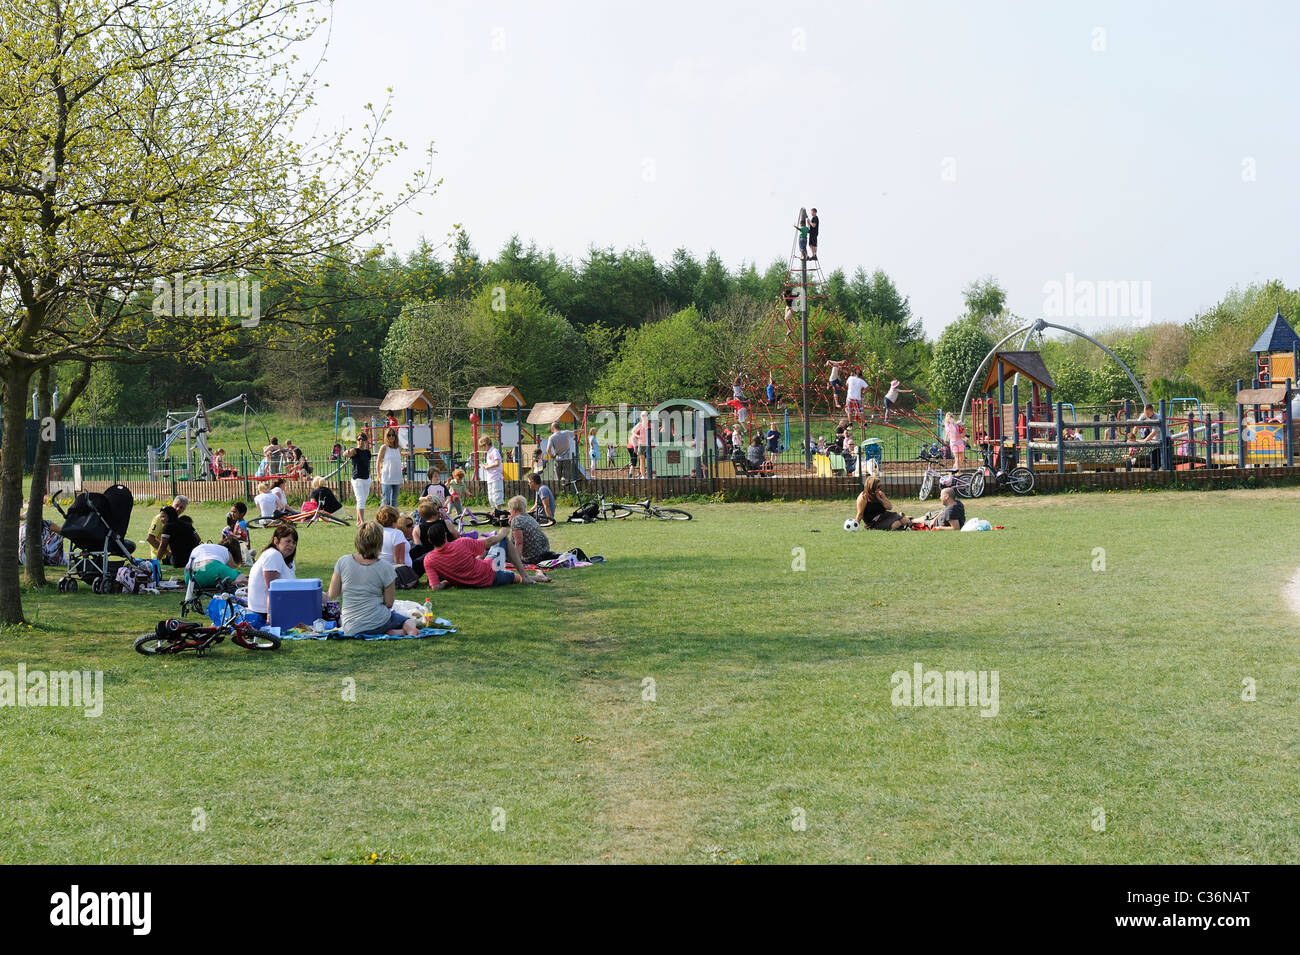 Stock photo if families relaxing at Rushcliffe country park in Nottingham. - Stock Image